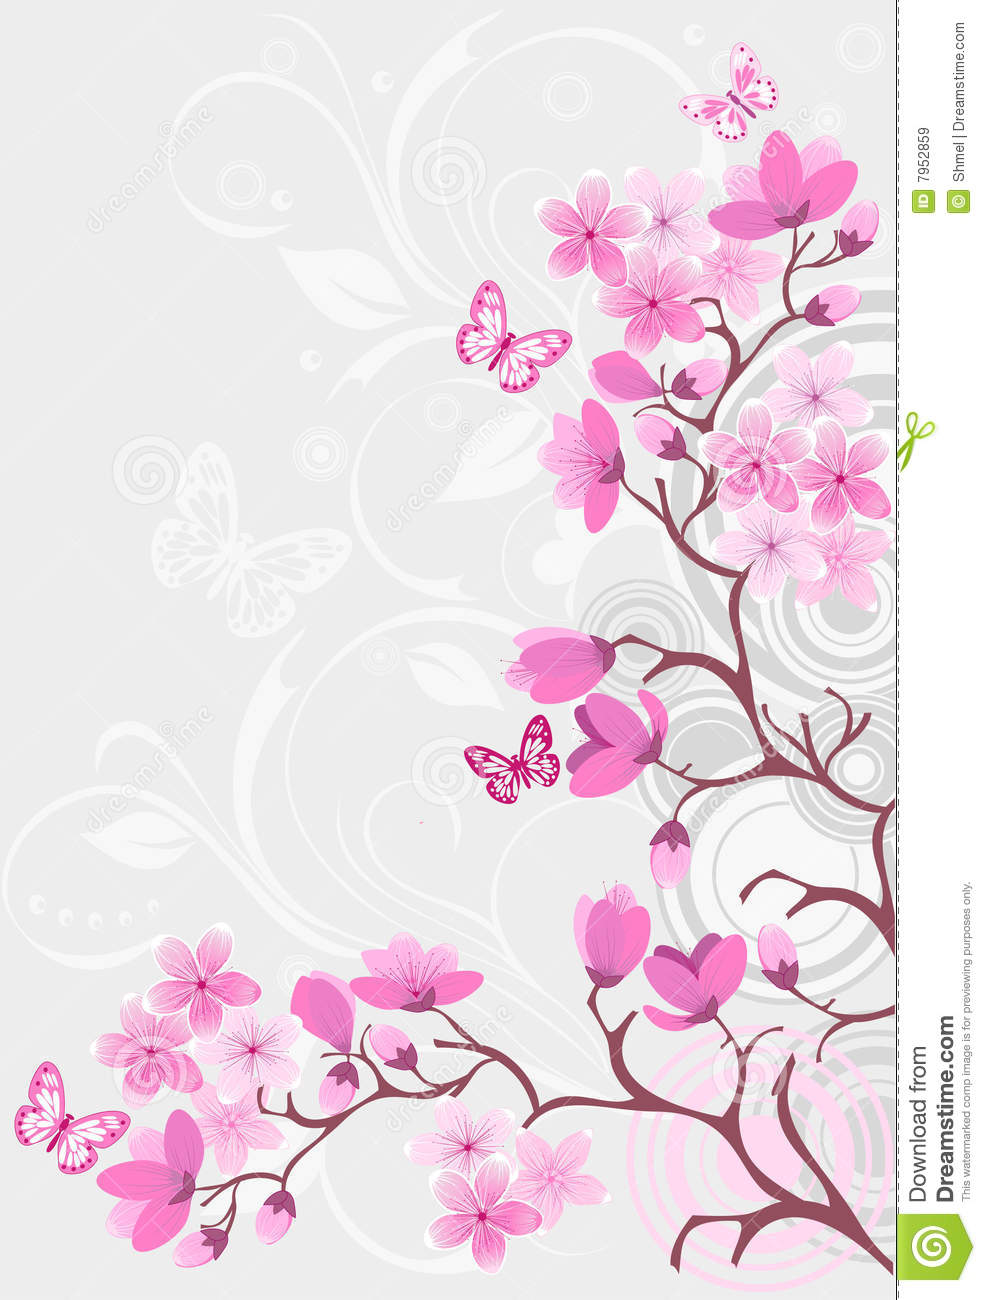 Cherry Blossom Background Royalty Free Stock Images - Image: 7952859